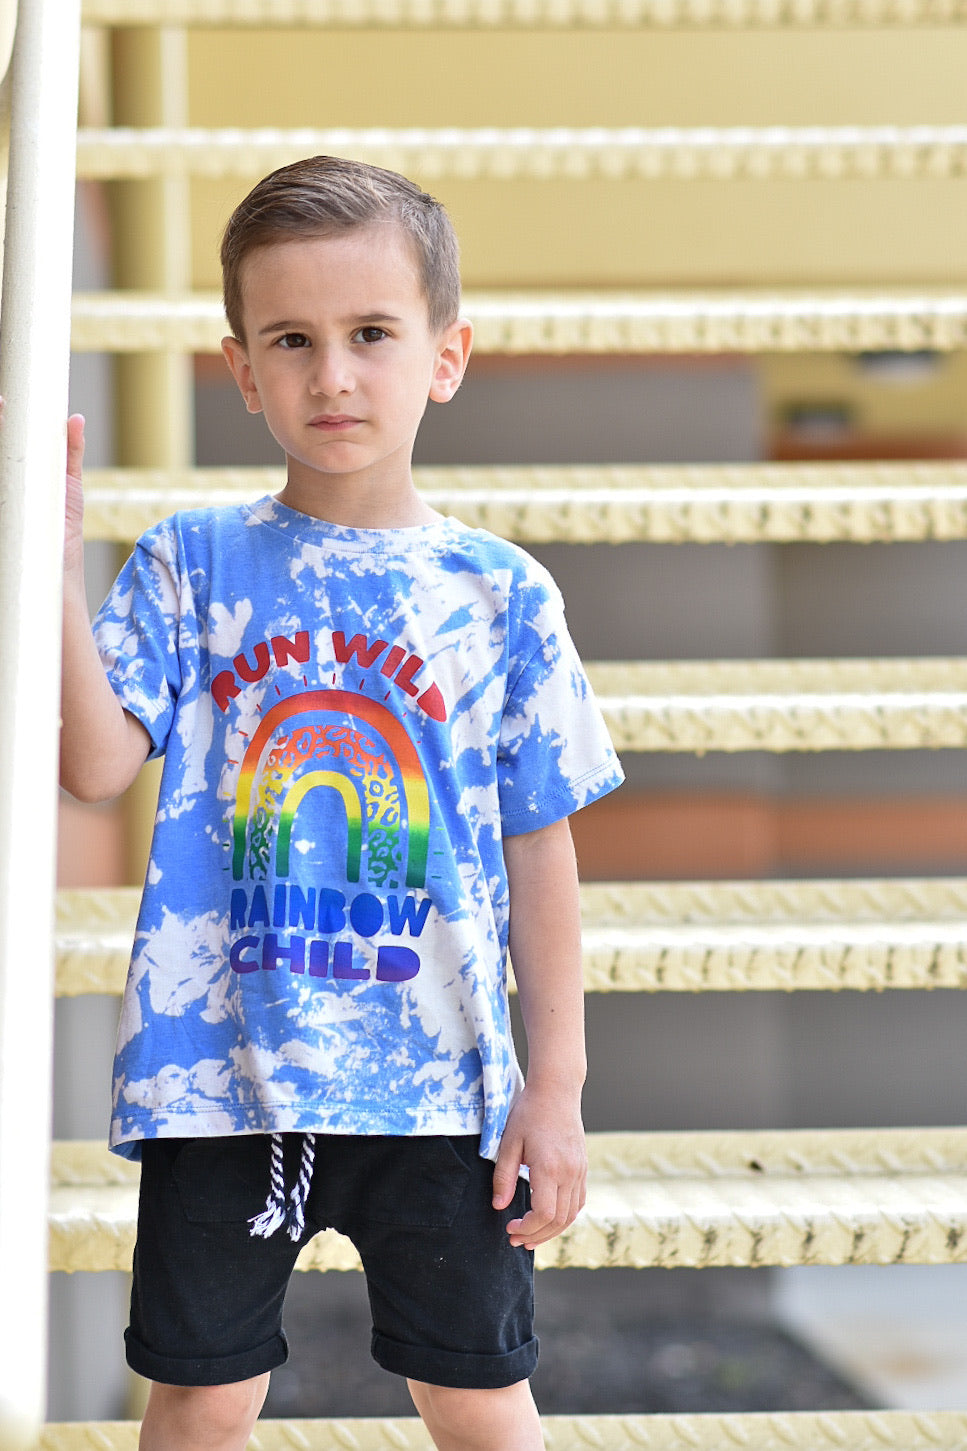 Run Wild Rainbow Child Acid Washed Rainbow - Toddler/Kids Tee